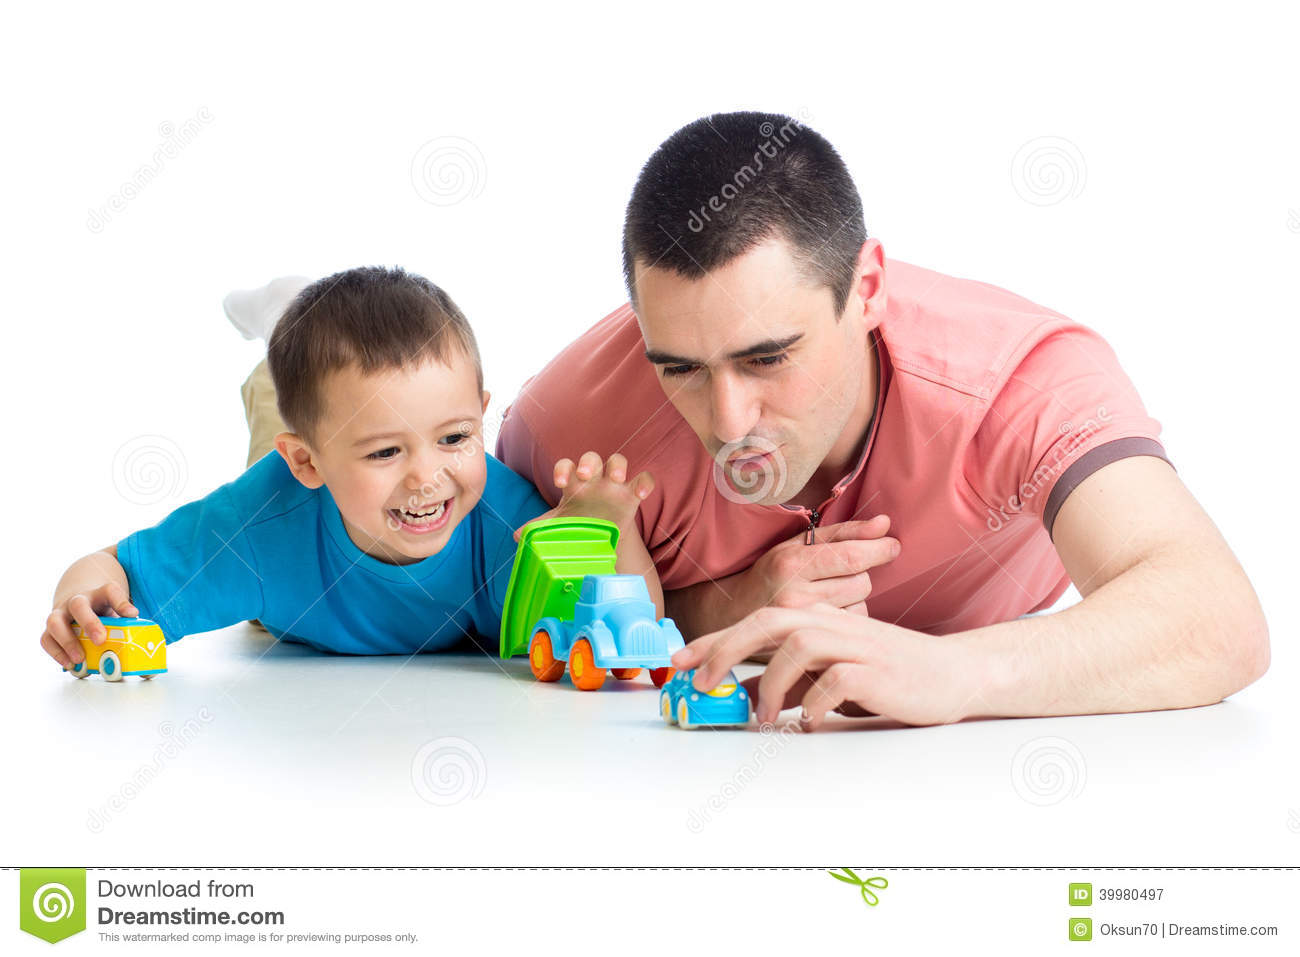 Boy Toys For Dads : Kid boy and father play with car toys stock photo image